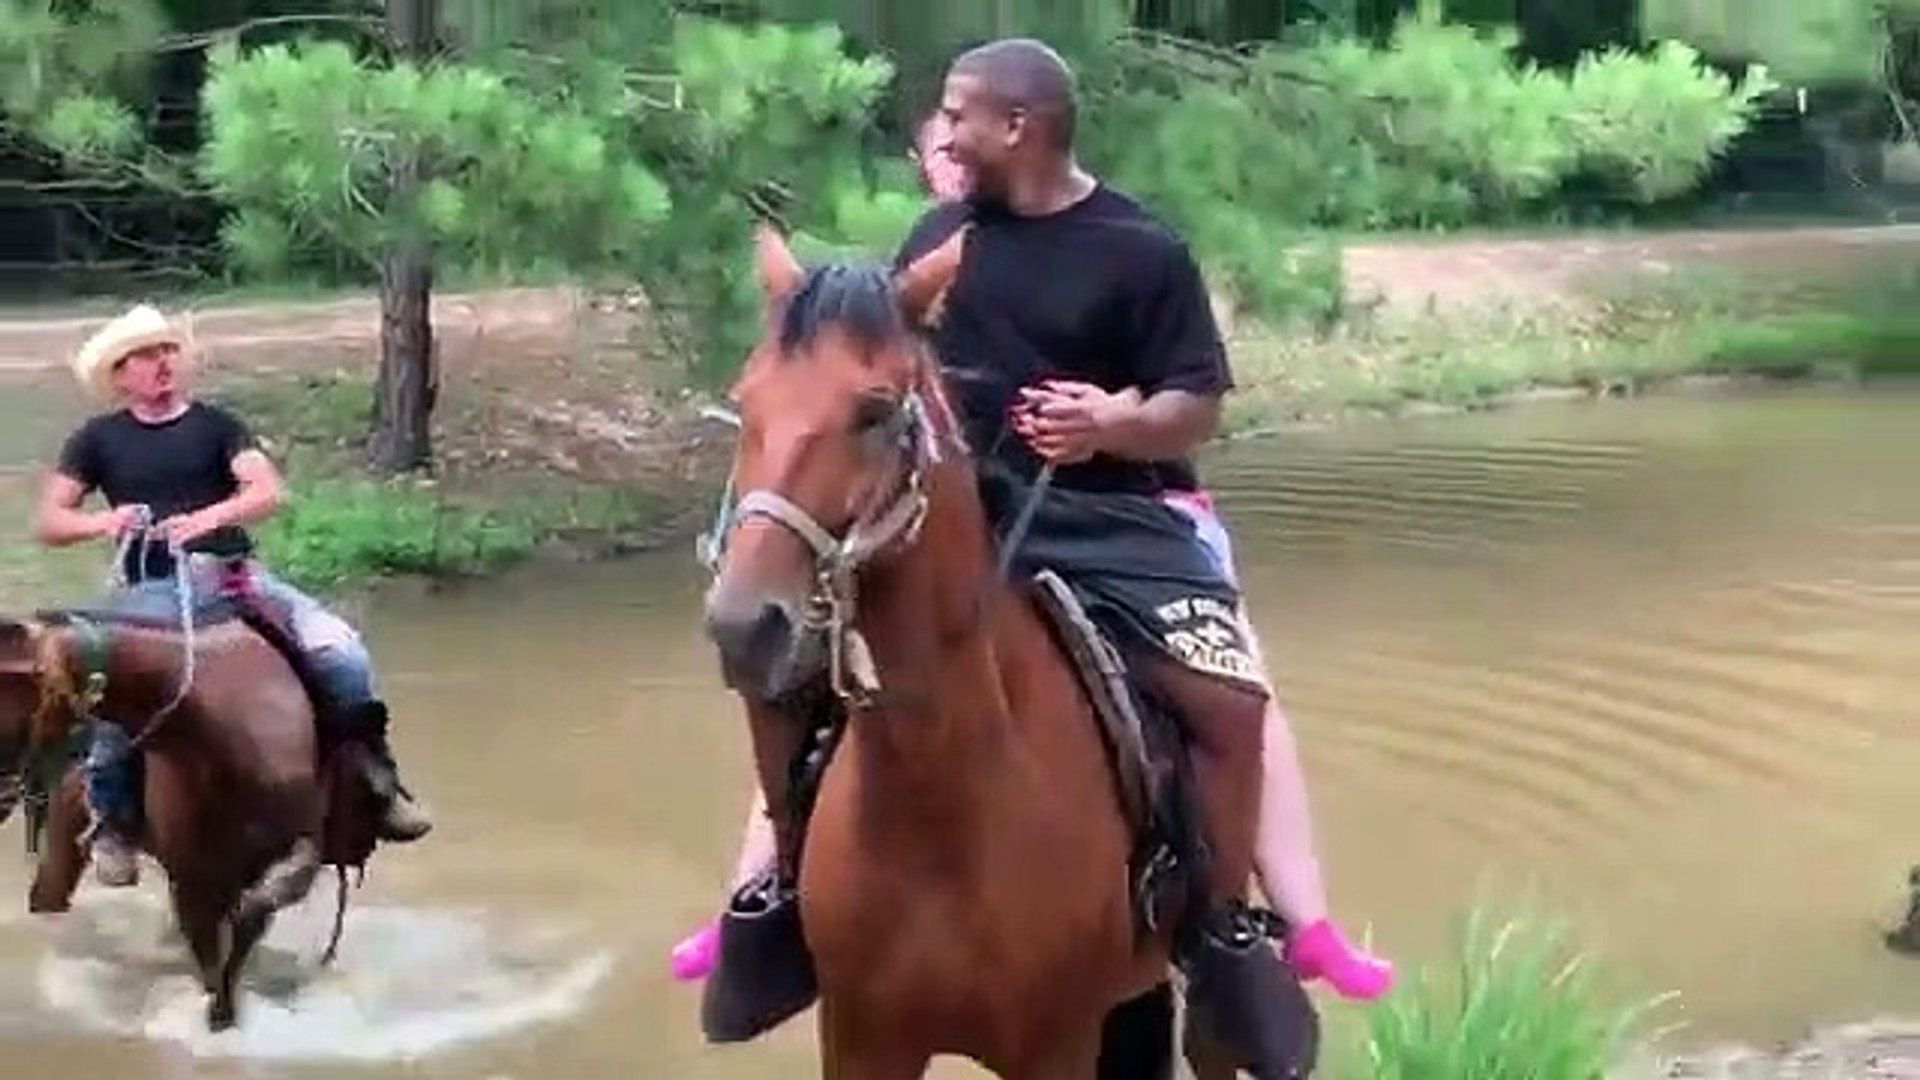 This horse had enough of people riding his back